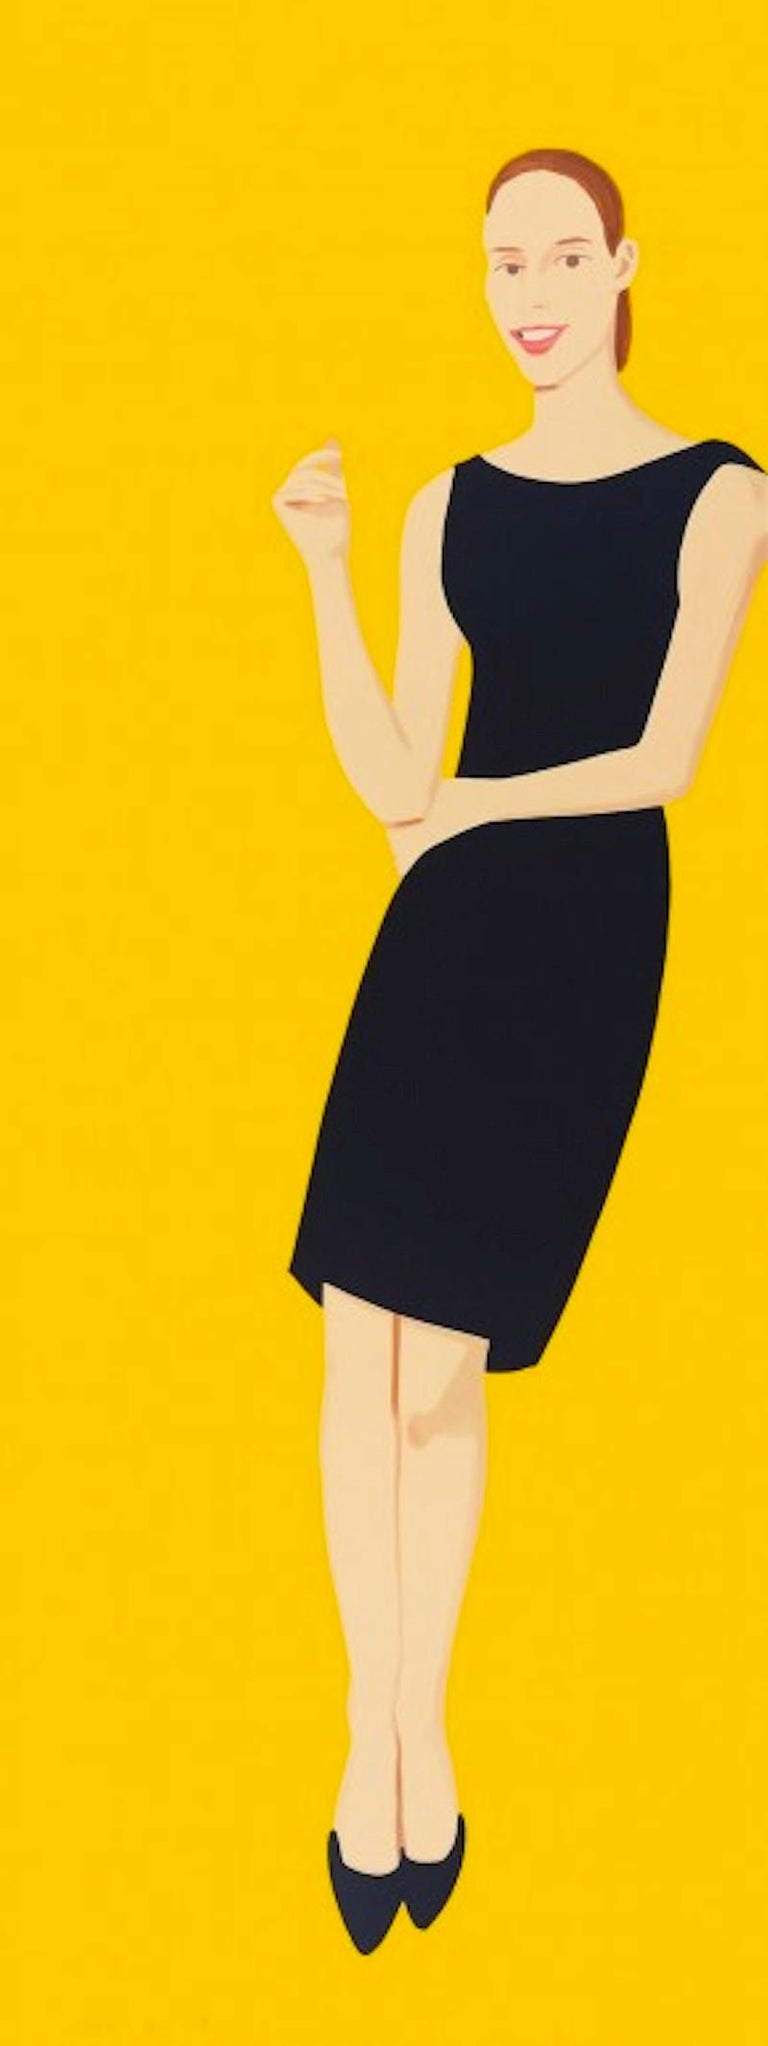 Black Dress Portfolio - Ulla - Print by Alex Katz